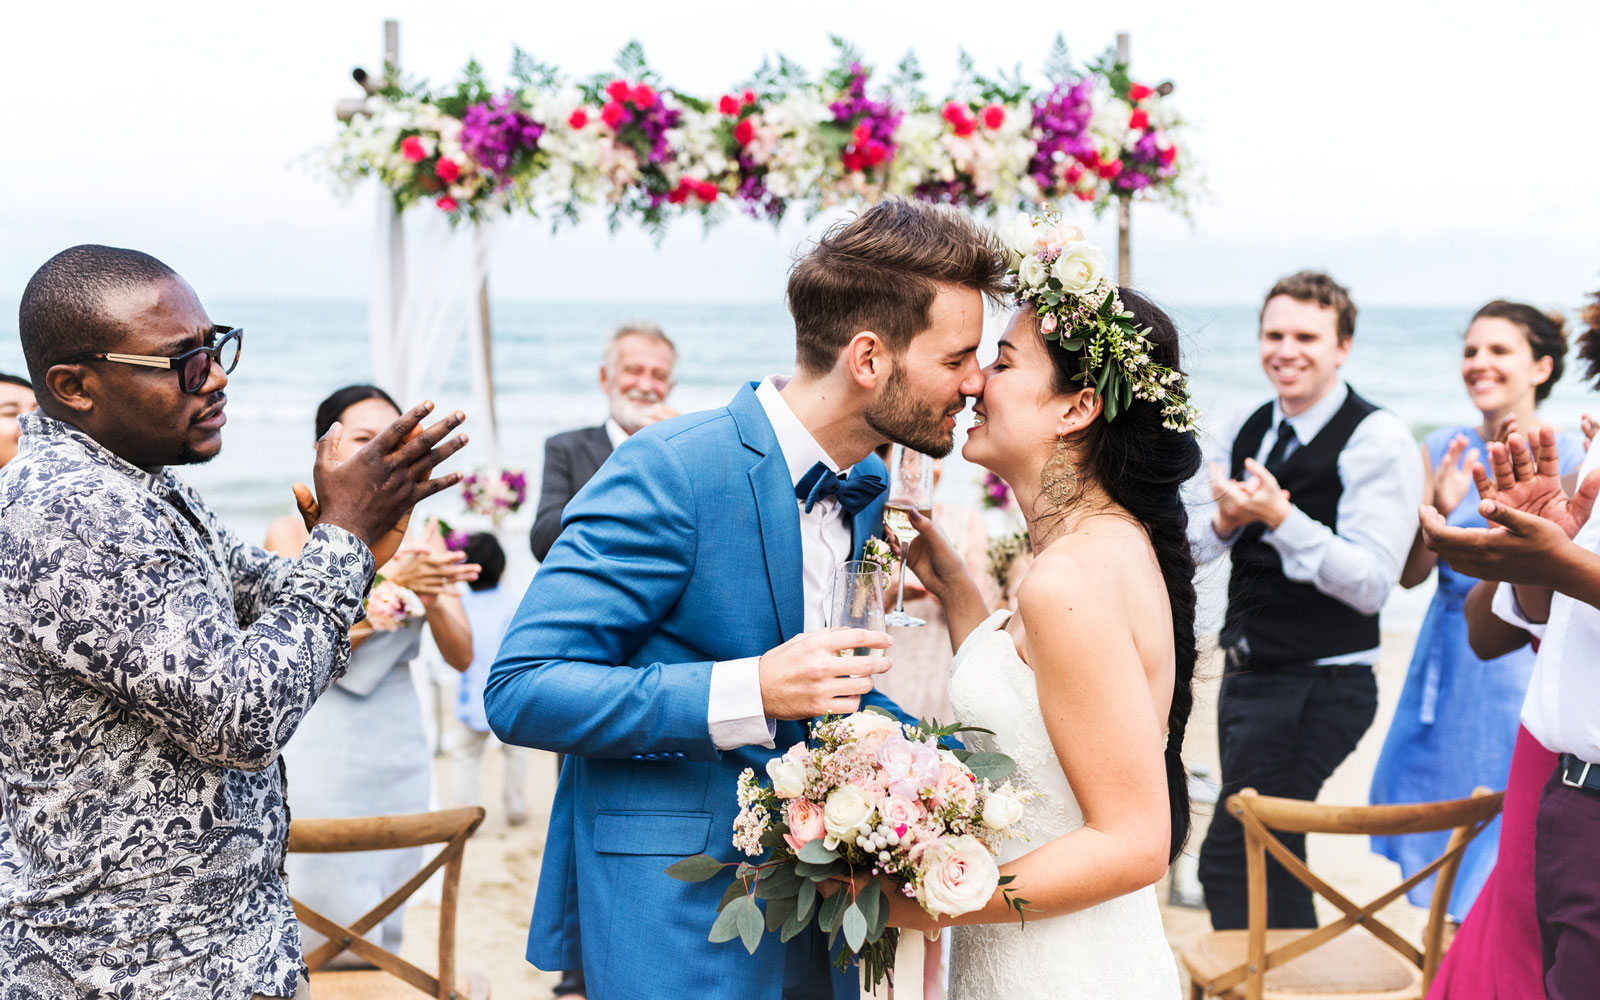 Your Friends Don't Like Using Their Vacation Days to Celebrate Your Wedding, Study Shows